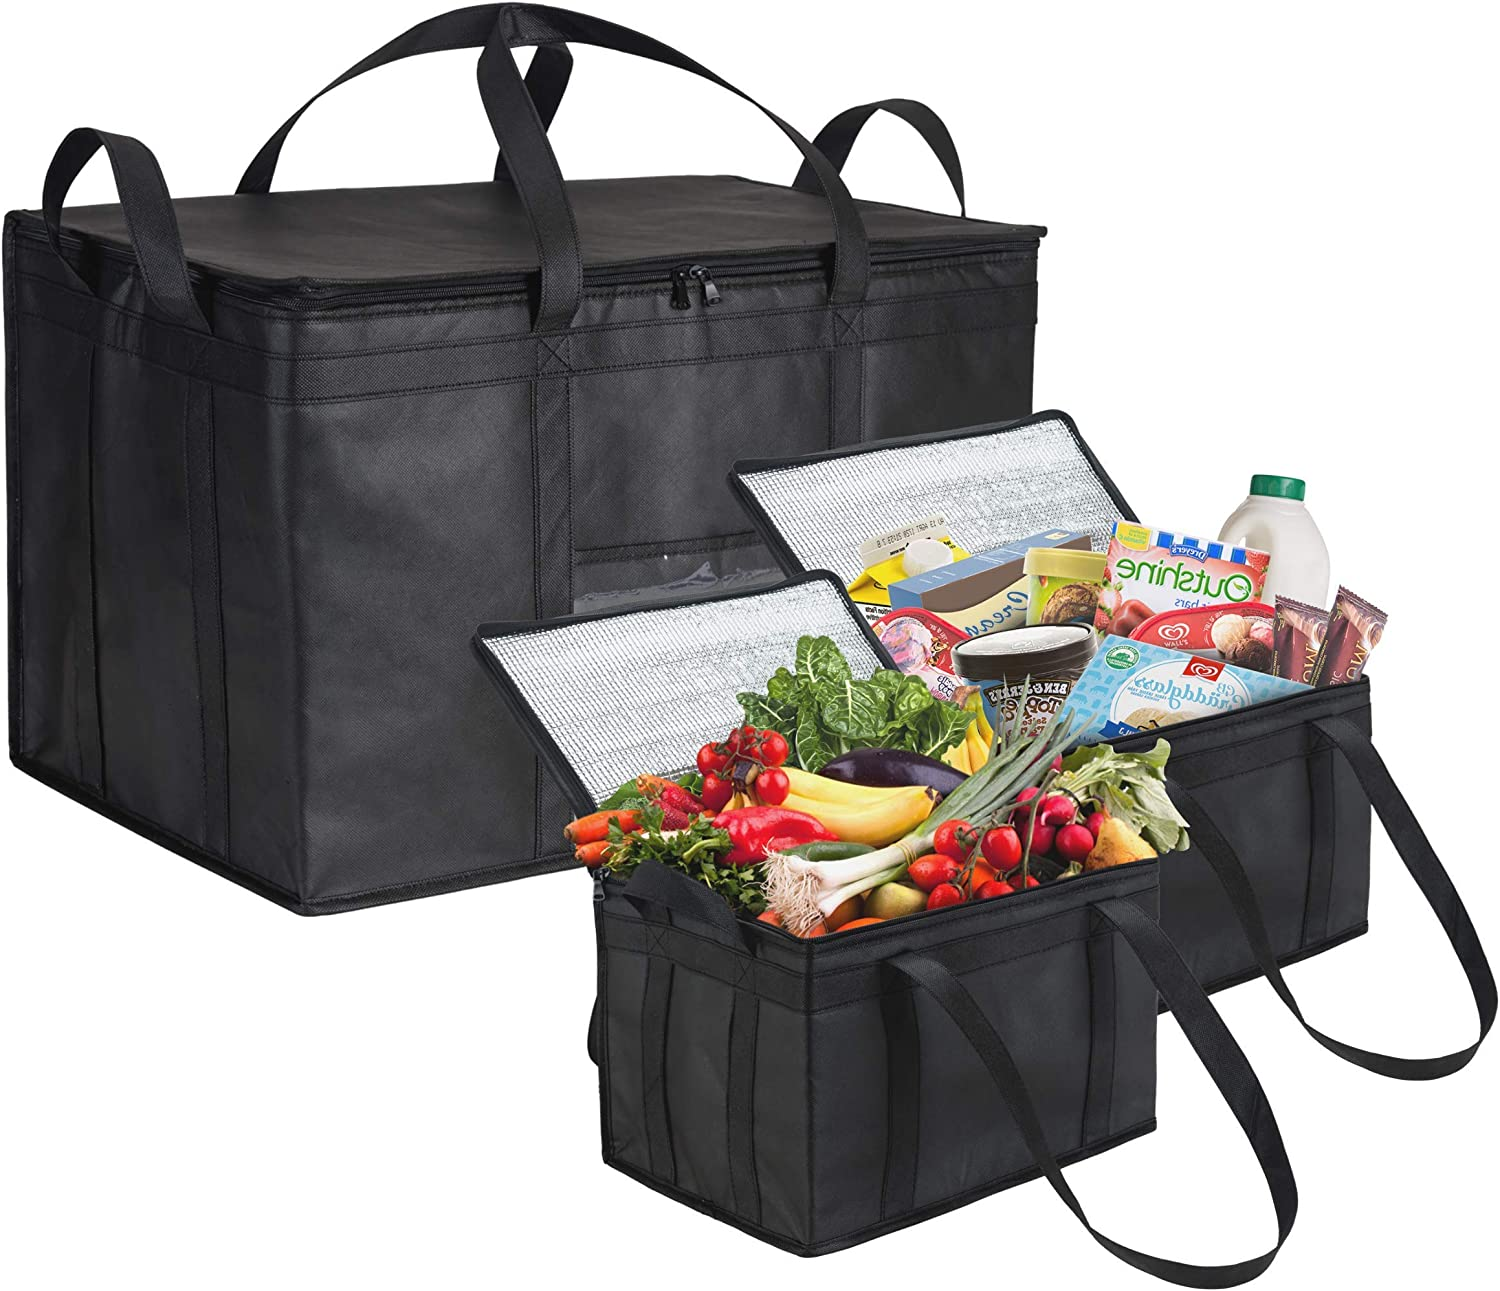 NZ Home Ultimate Food Delivery Bags Bundle Large Insulated Bags 2 Pack + XXXL Insulated Bags 1 Pack